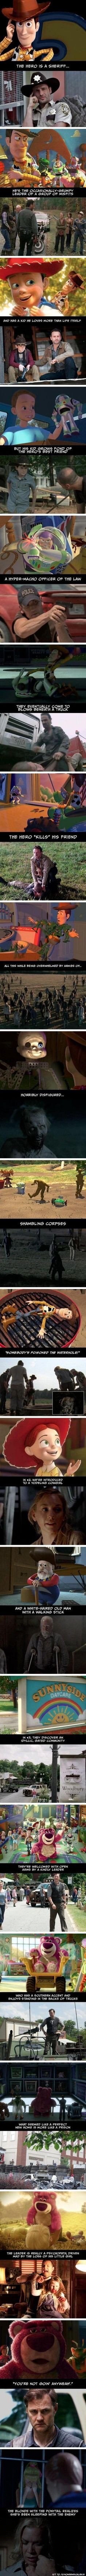 Silly Likes - The Walking Dead and Toy Story